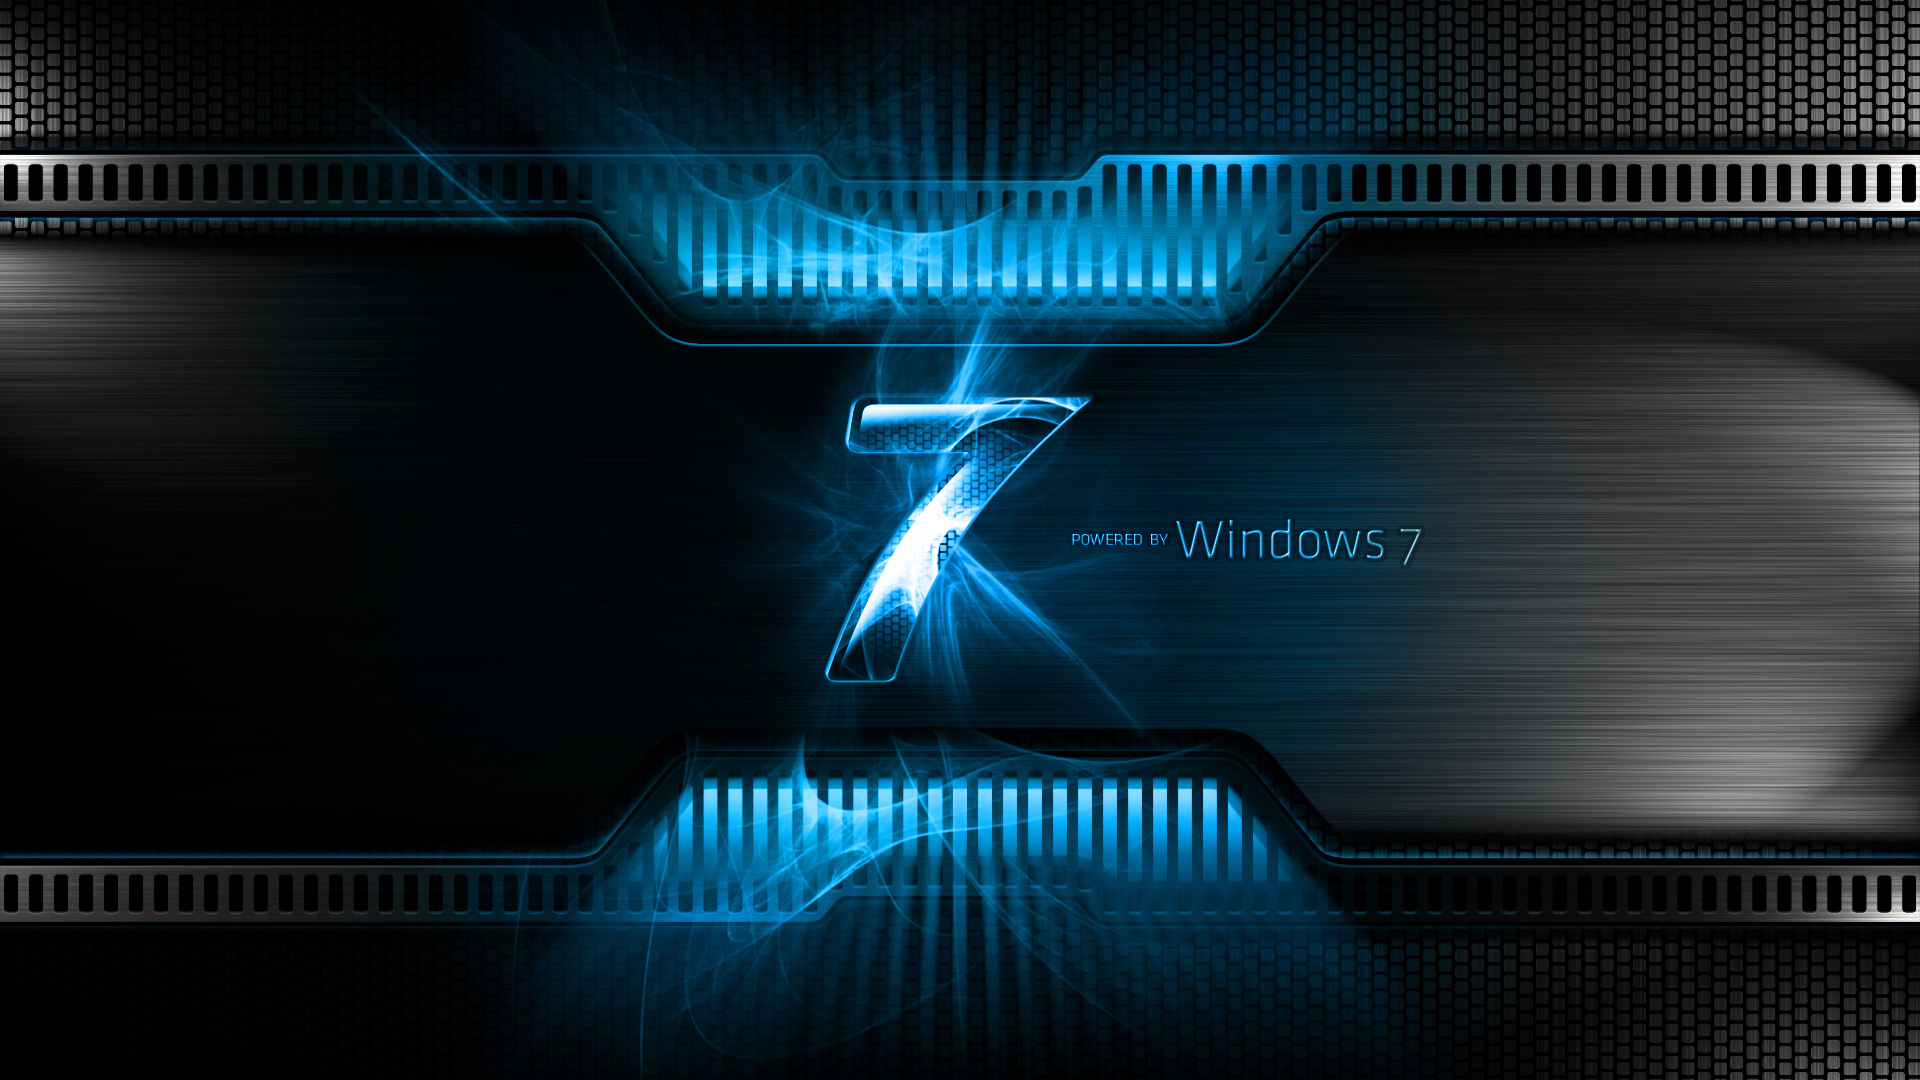 Windows 7 Power Wallpapers HD Wallpapers 1920x1080